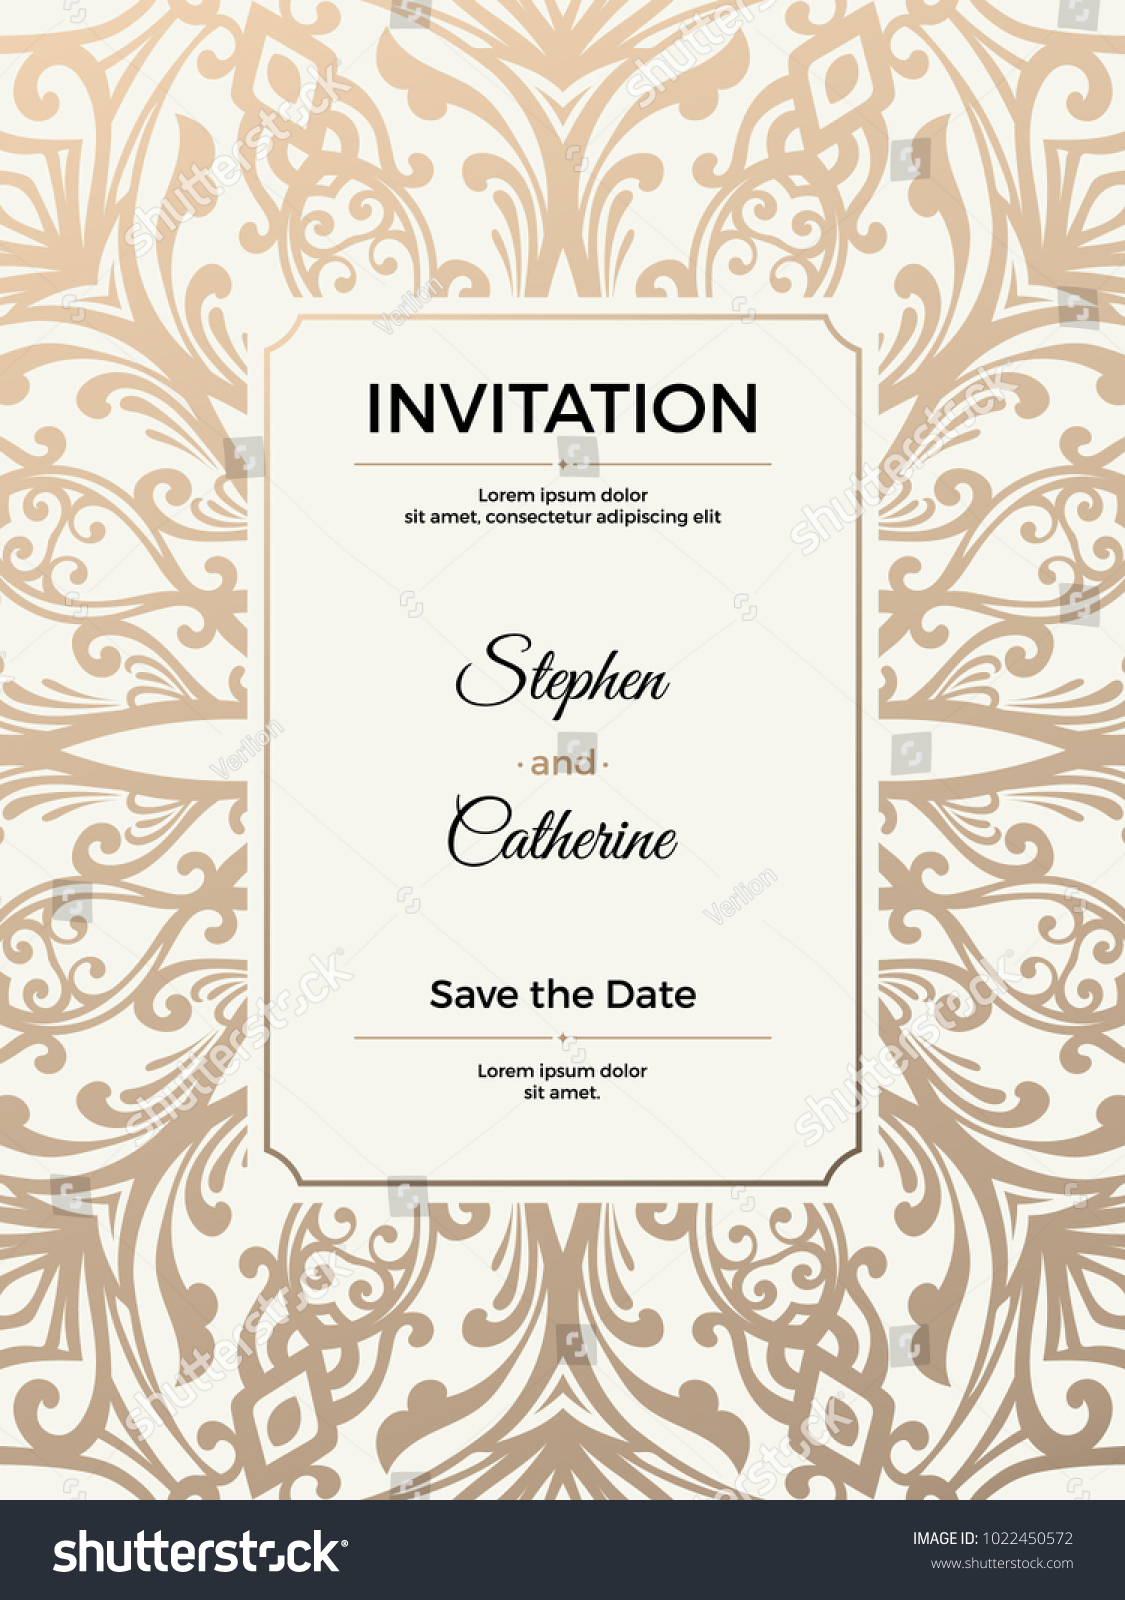 Vintage Wedding Invitation Template Greeting Card Stock Vector ...